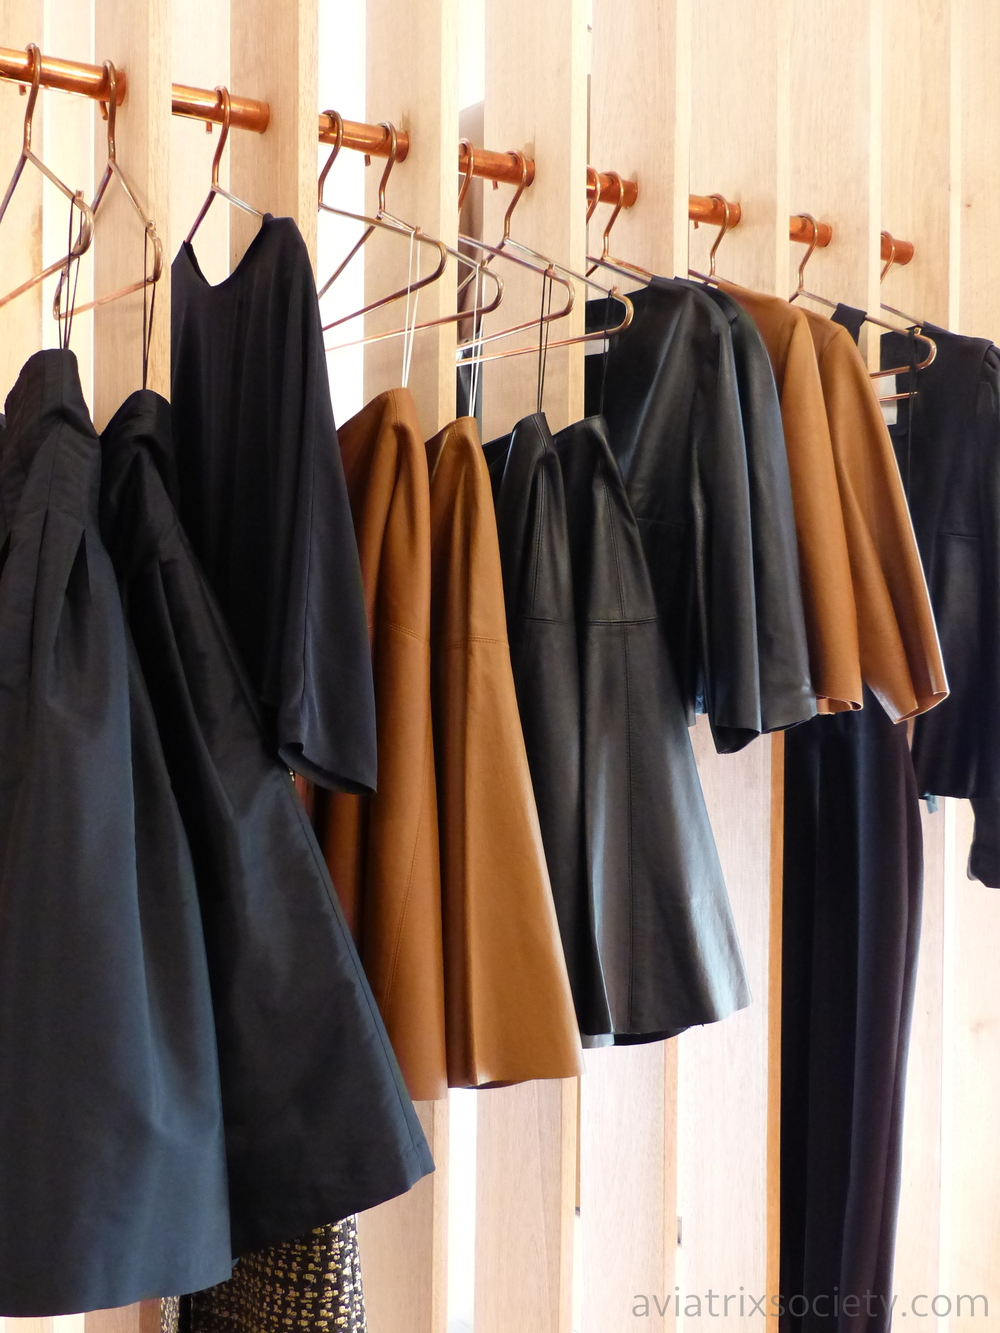 Leather A-Line skirts, cropped leather jackets, long sleeve Master leather jacket, tweed and silk skirts at Sandra Weil Polanco for our shopping guide of Mexico City